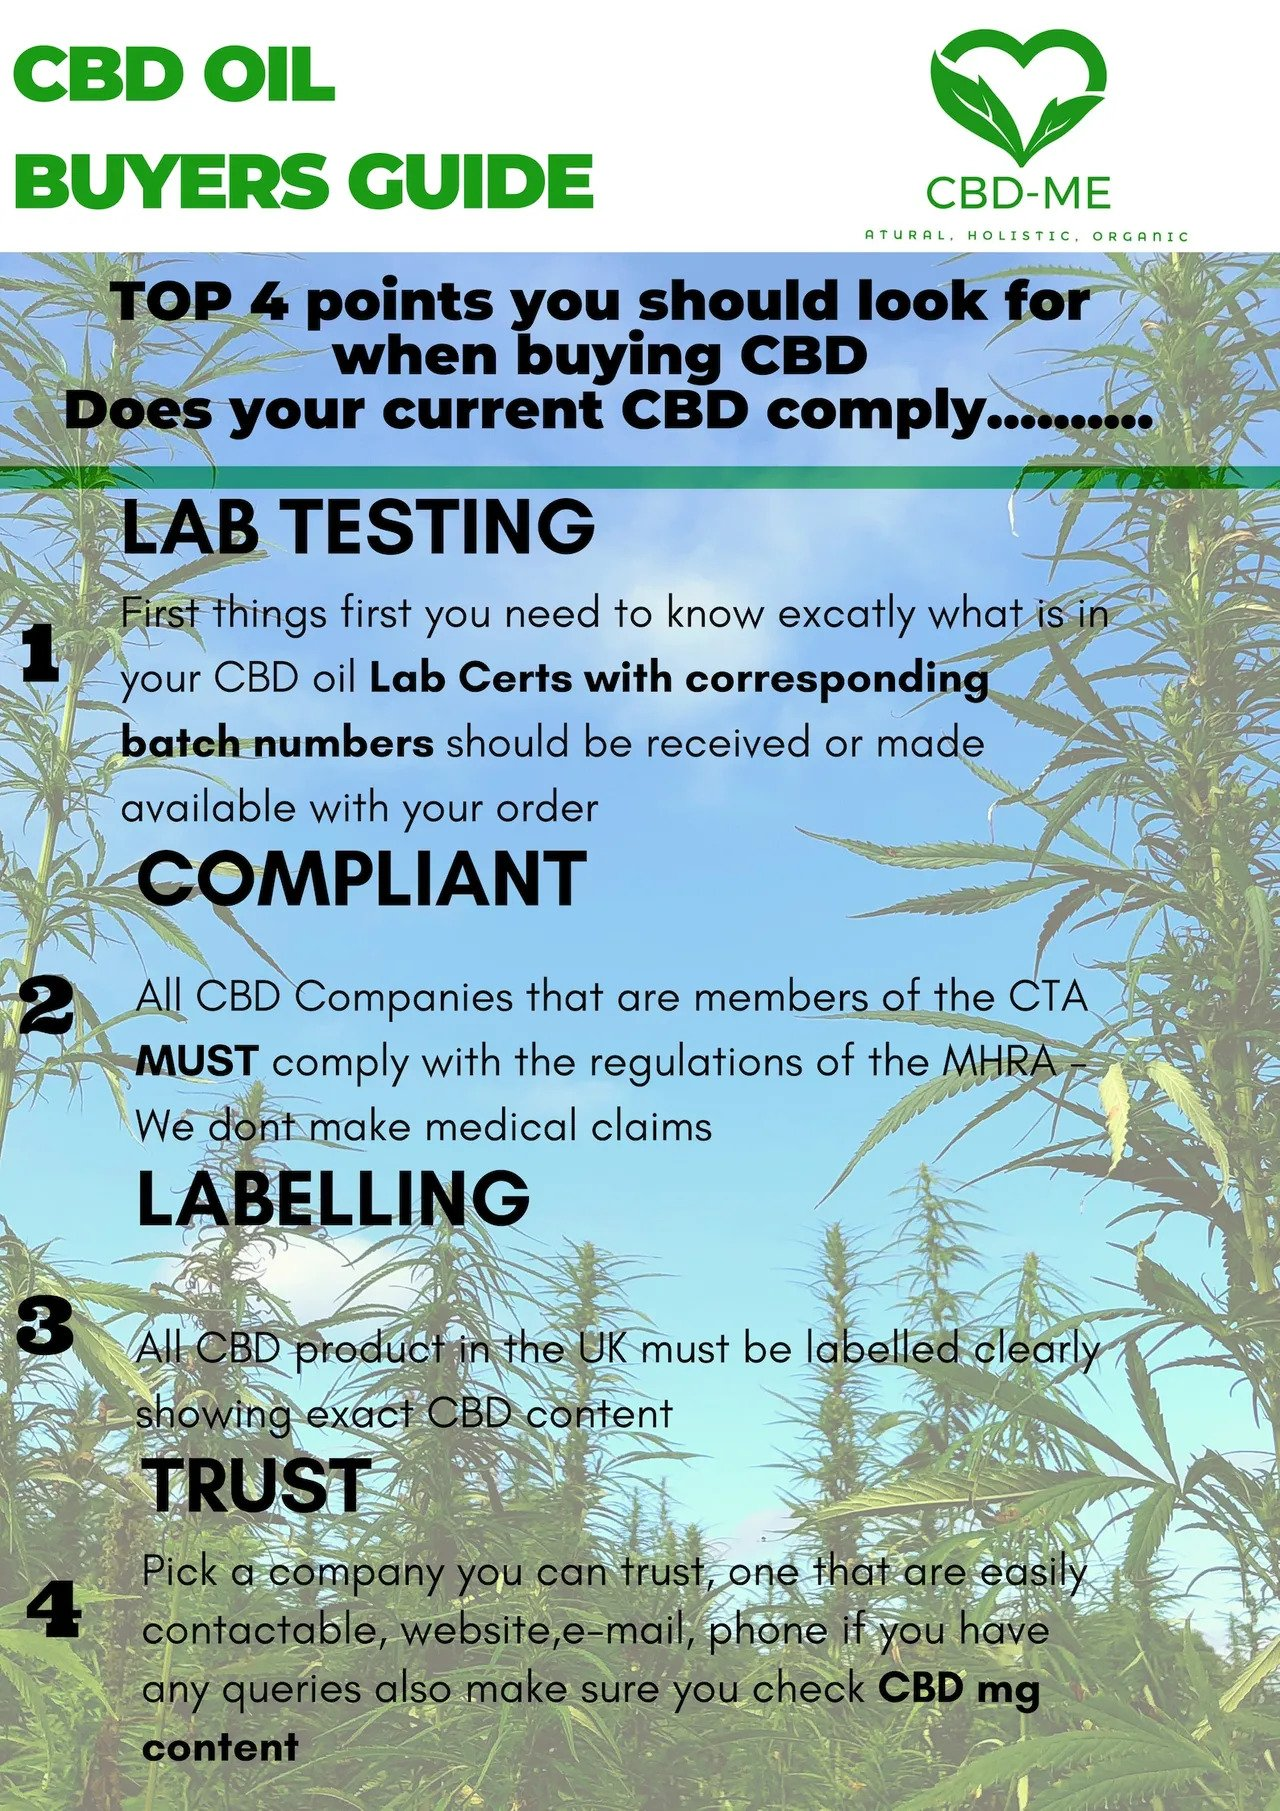 A Guide on buying CBD